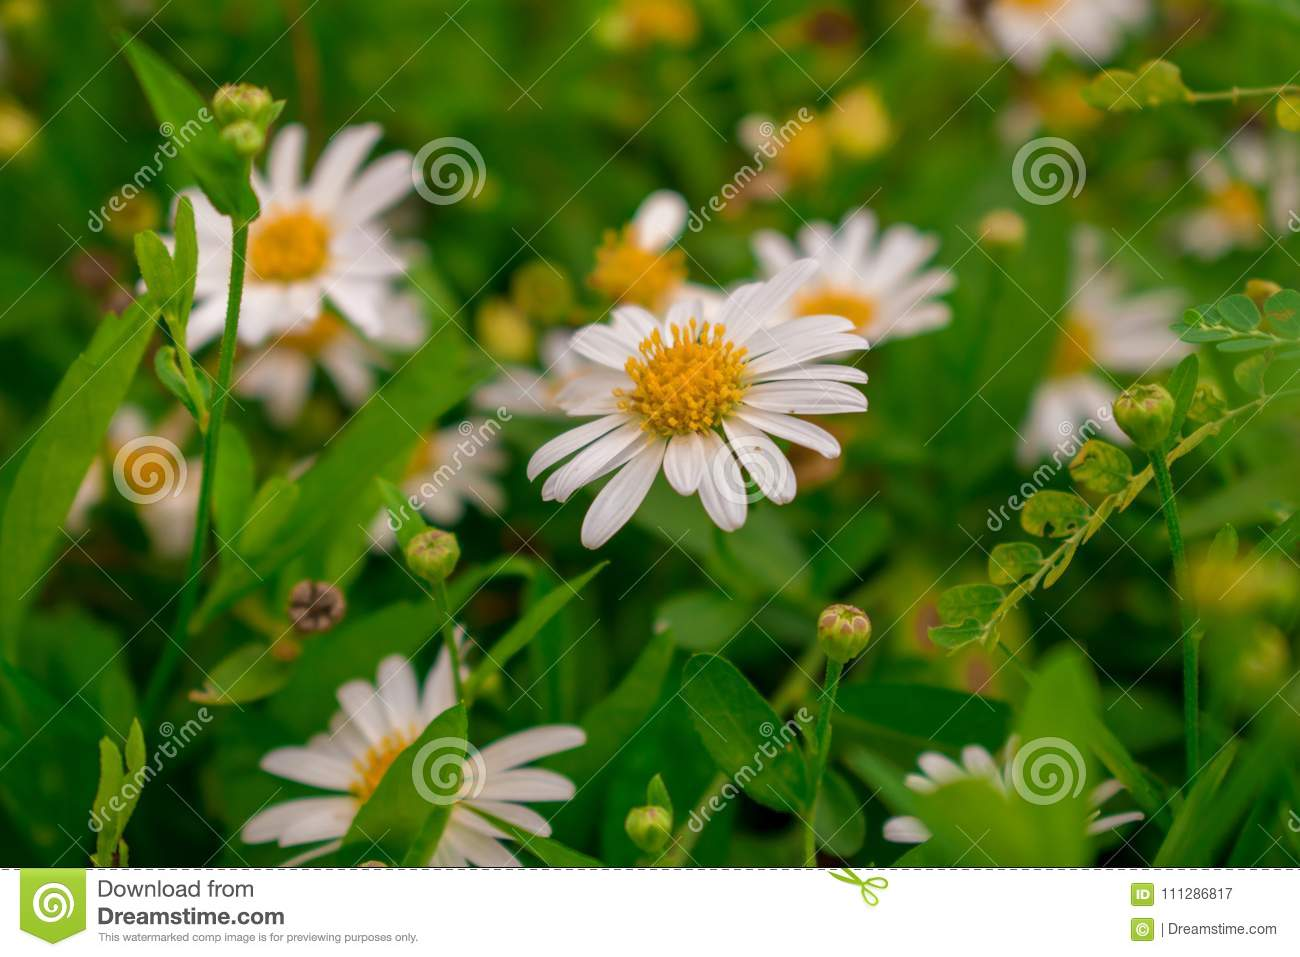 White flowers in the garden stock image image of beautiful love download white flowers in the garden stock image image of beautiful love 111286817 izmirmasajfo